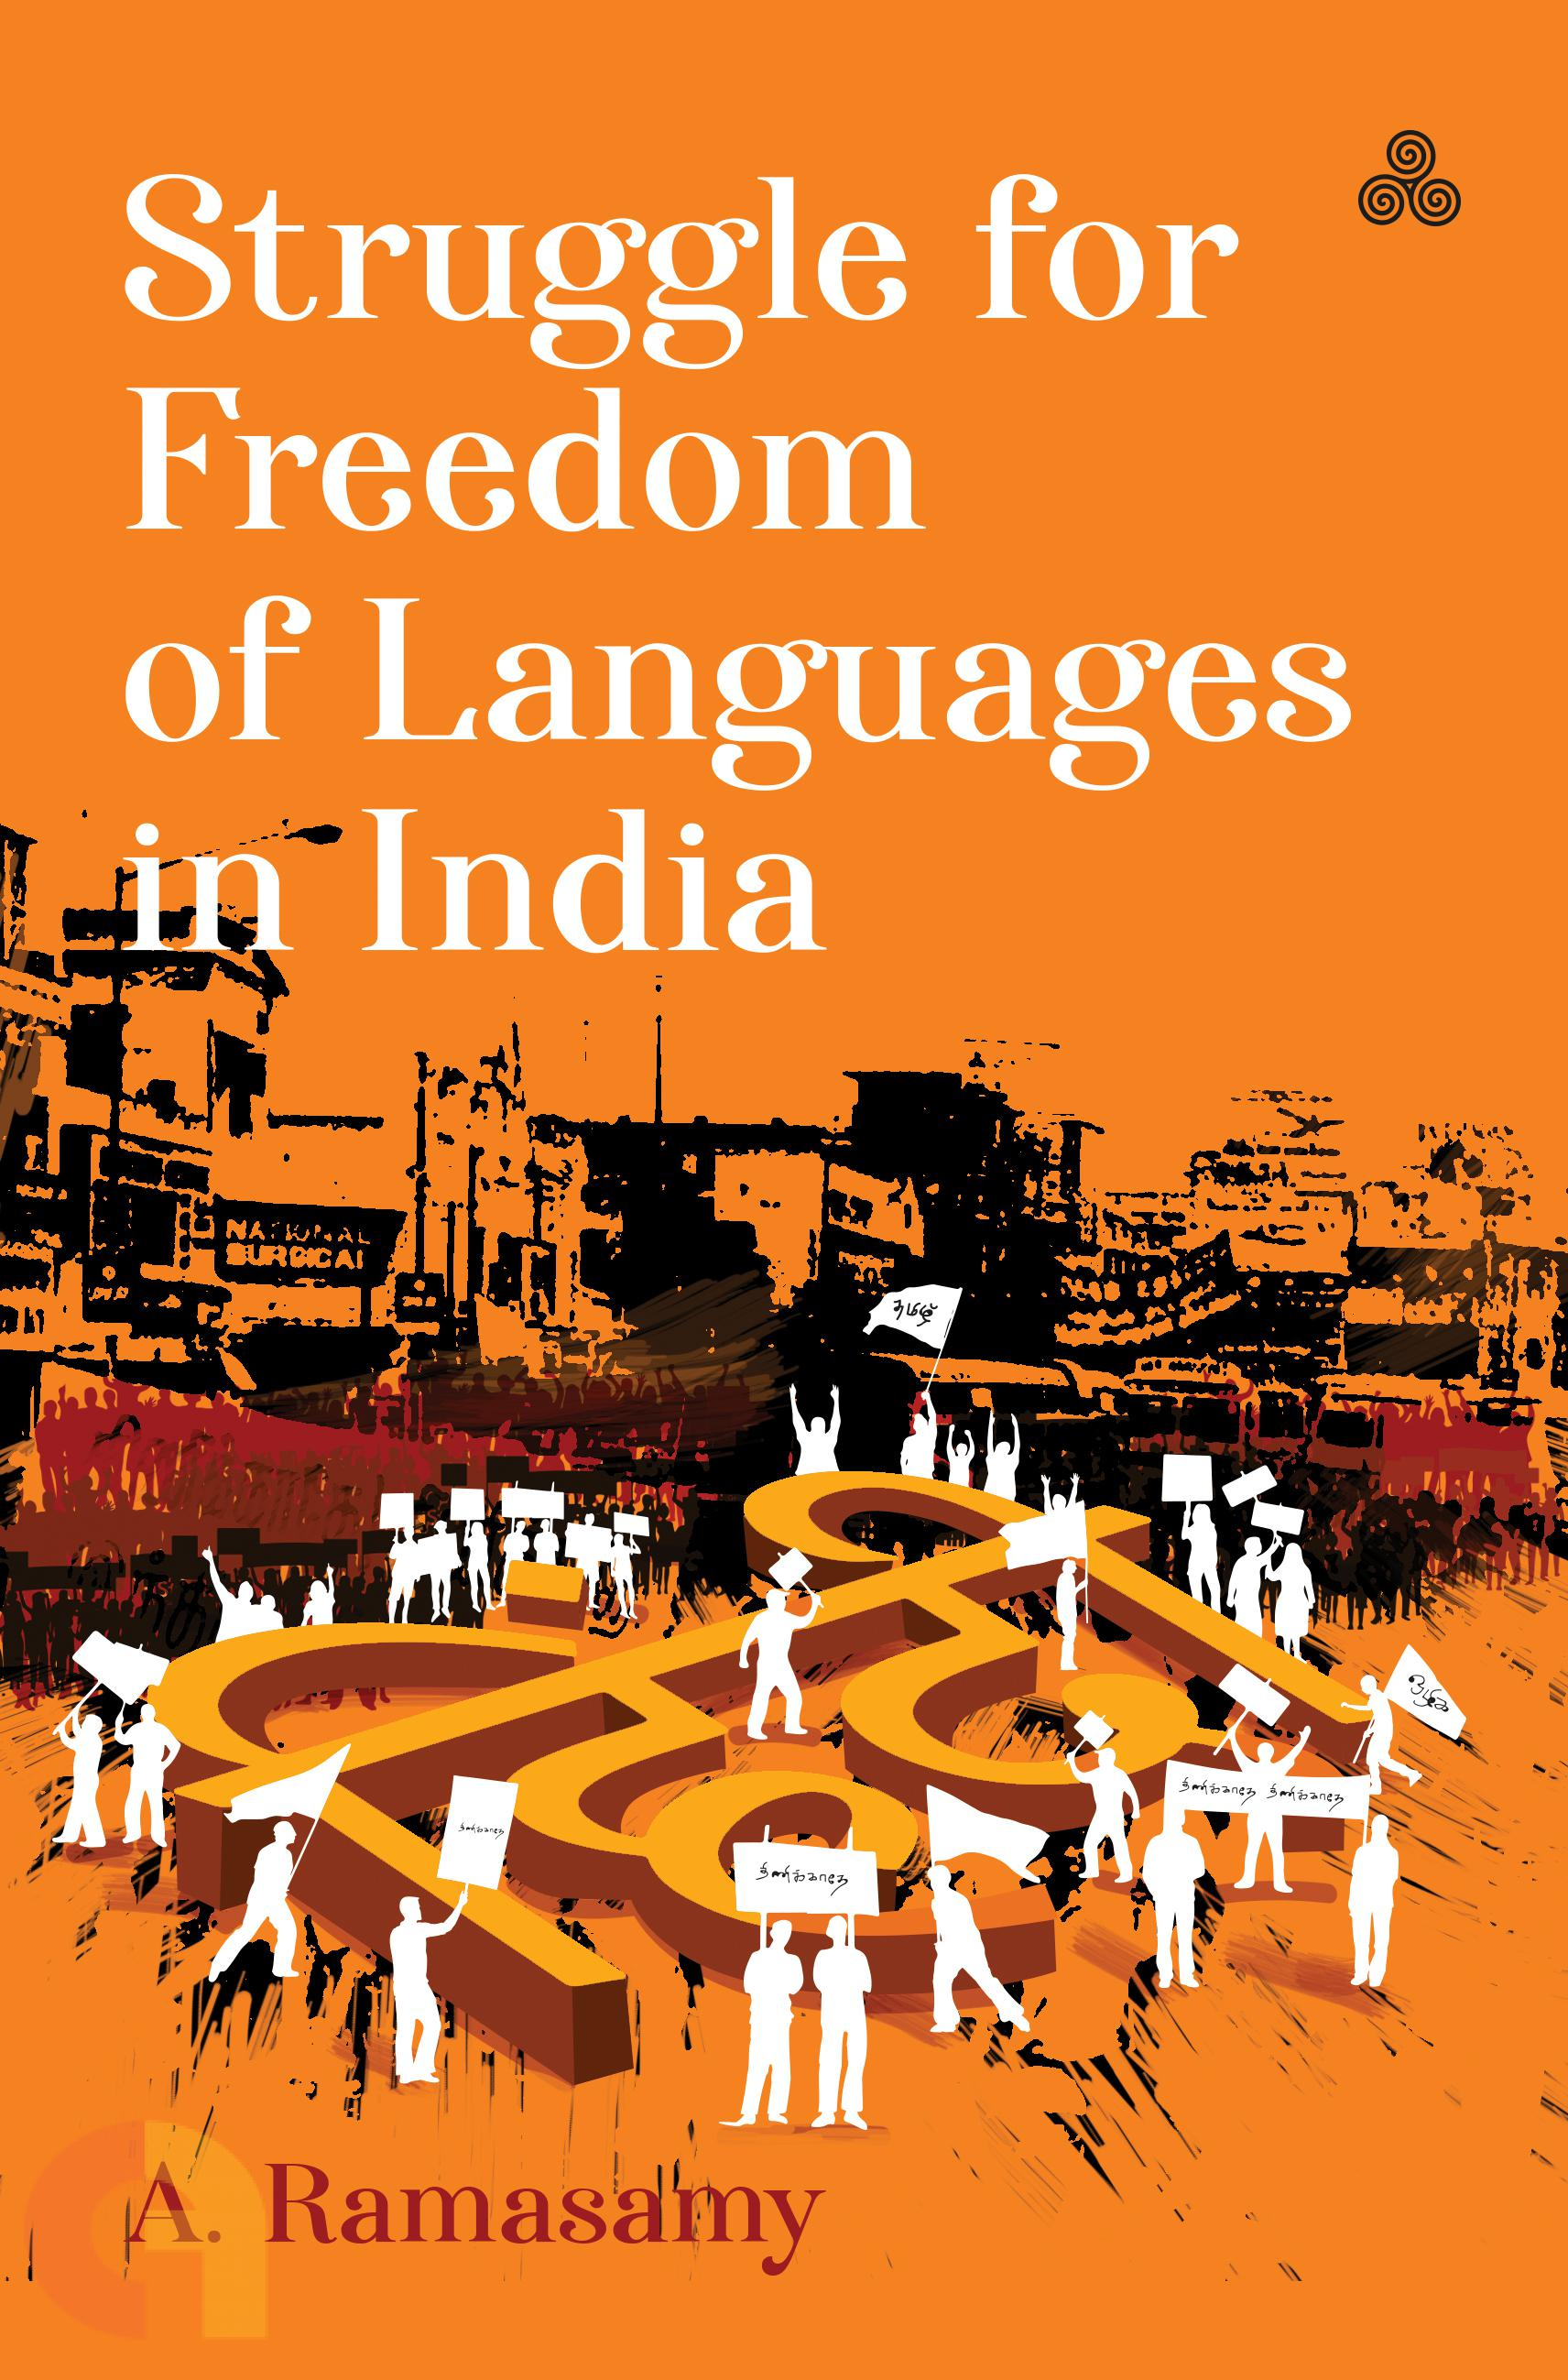 Struggle for Freedom of Languages in India